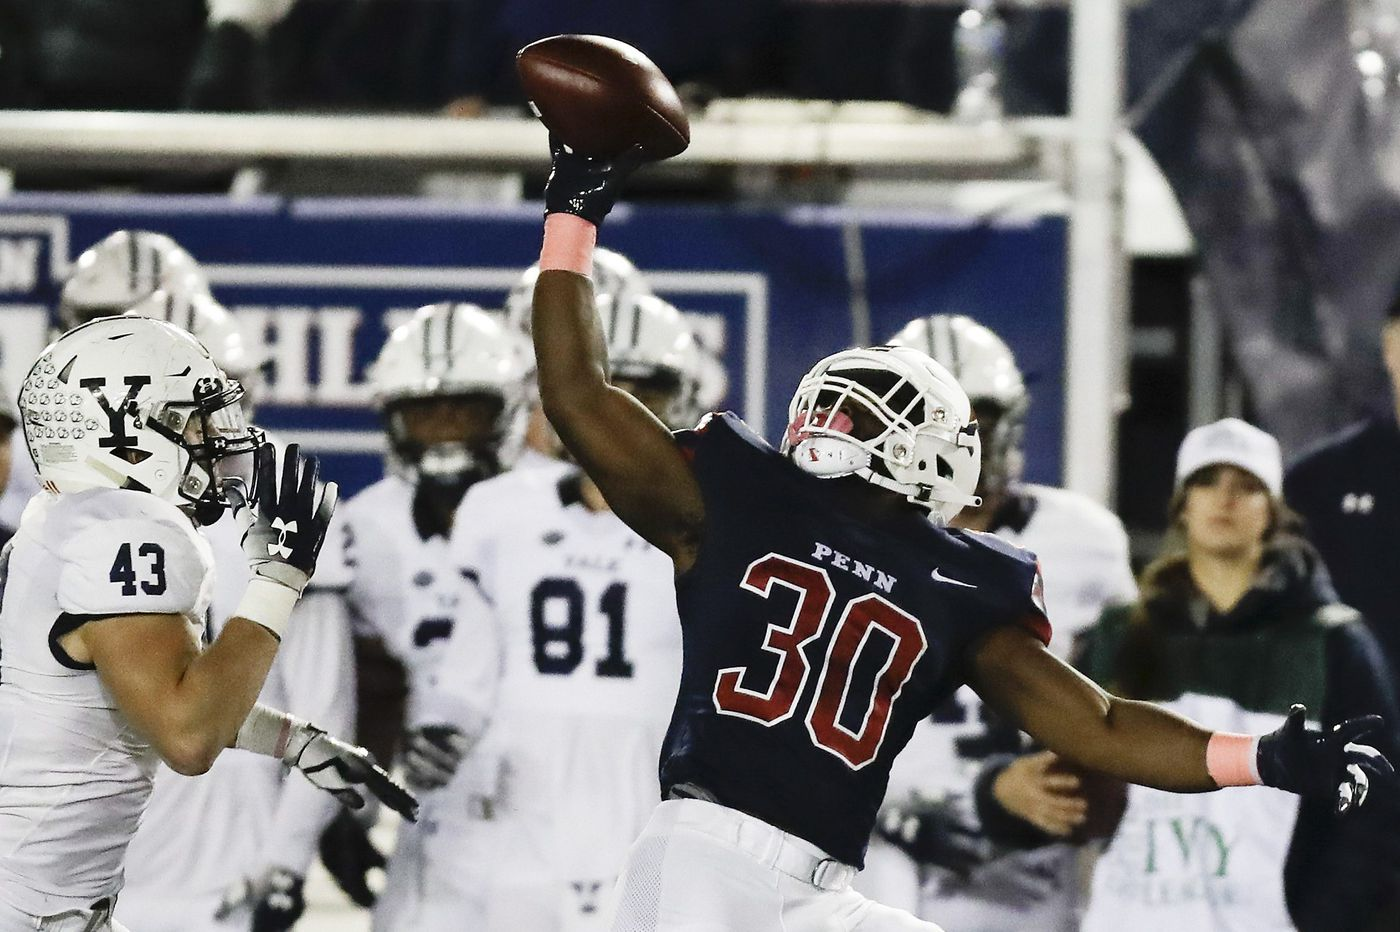 Penn football falls hard to Yale, 23-10